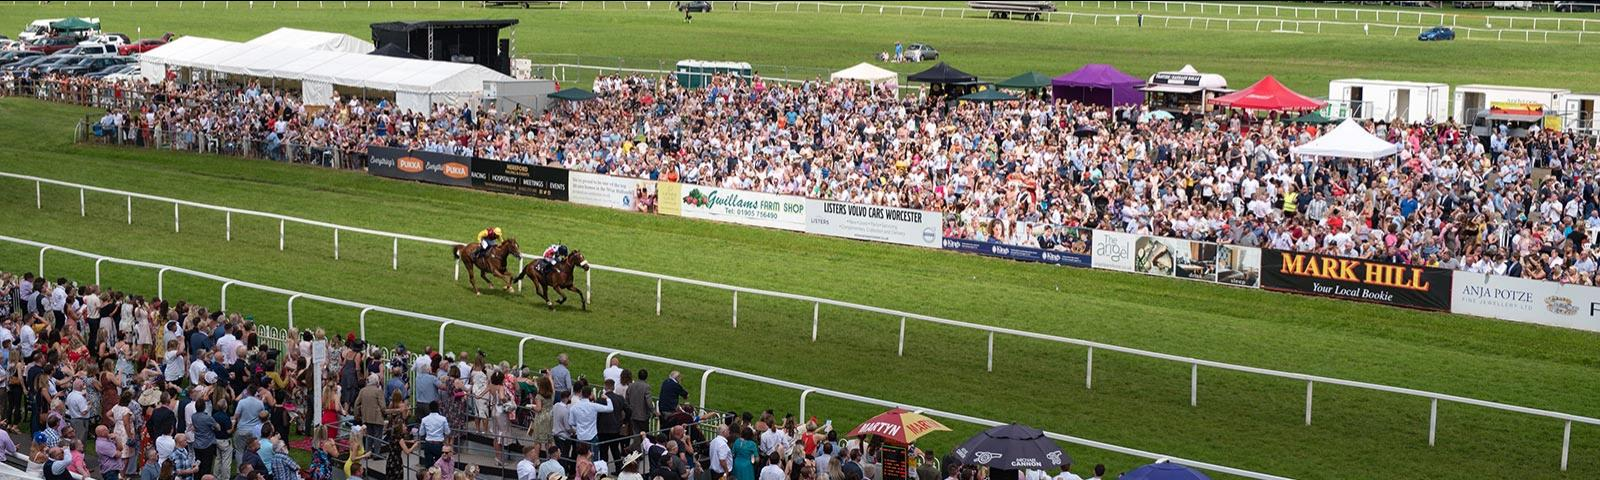 Crowds at Worcester Racecourse watching racing action.